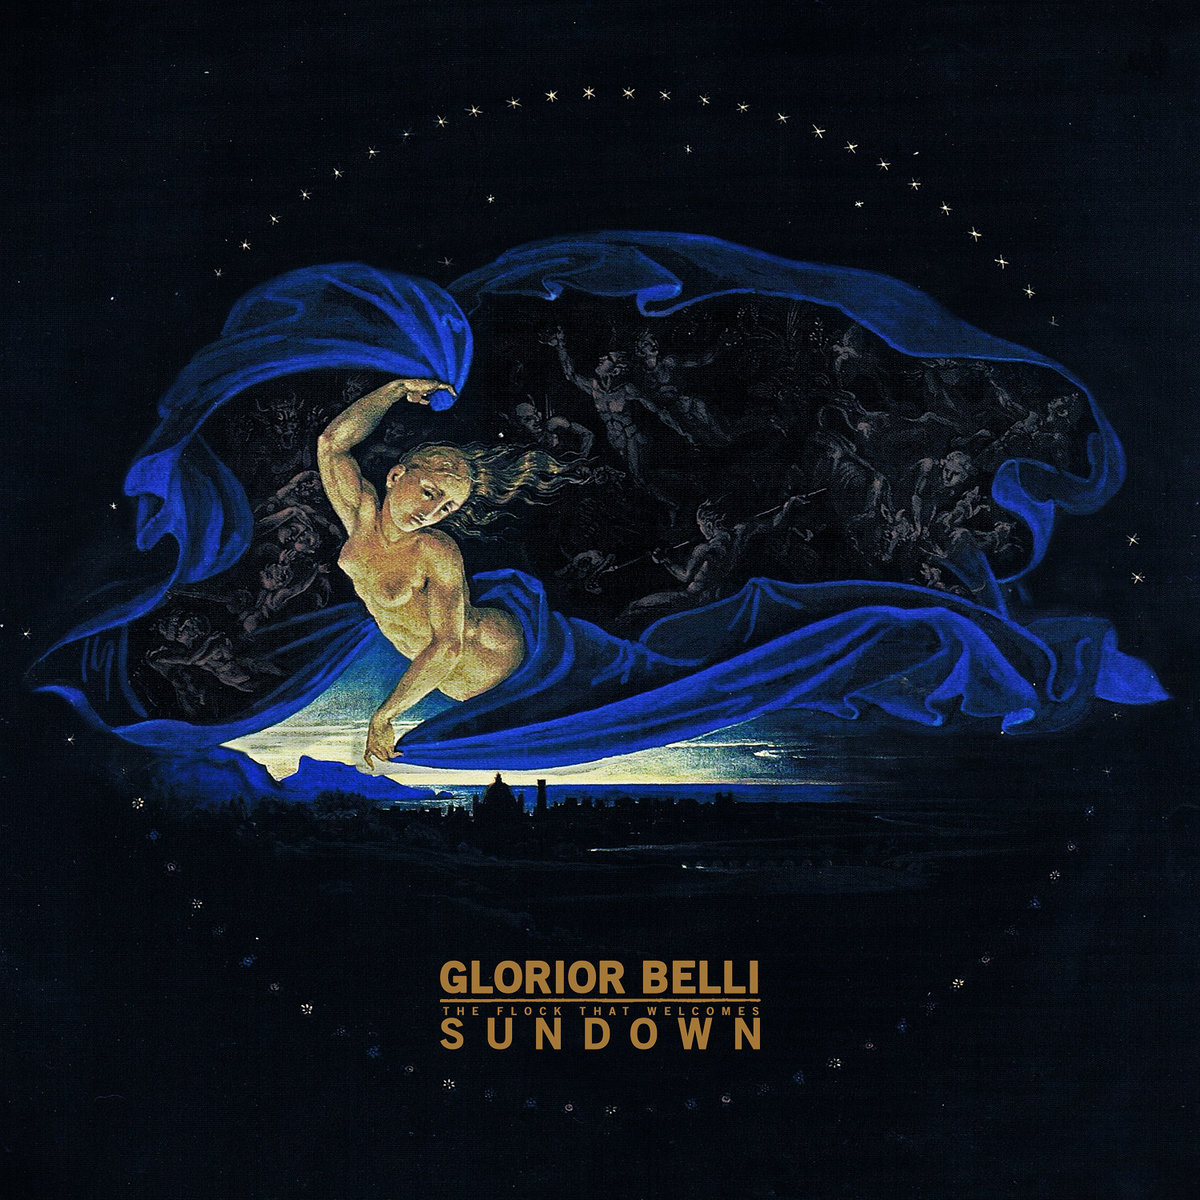 Glorior Belli – Sundown (The Flock That Welcomes)